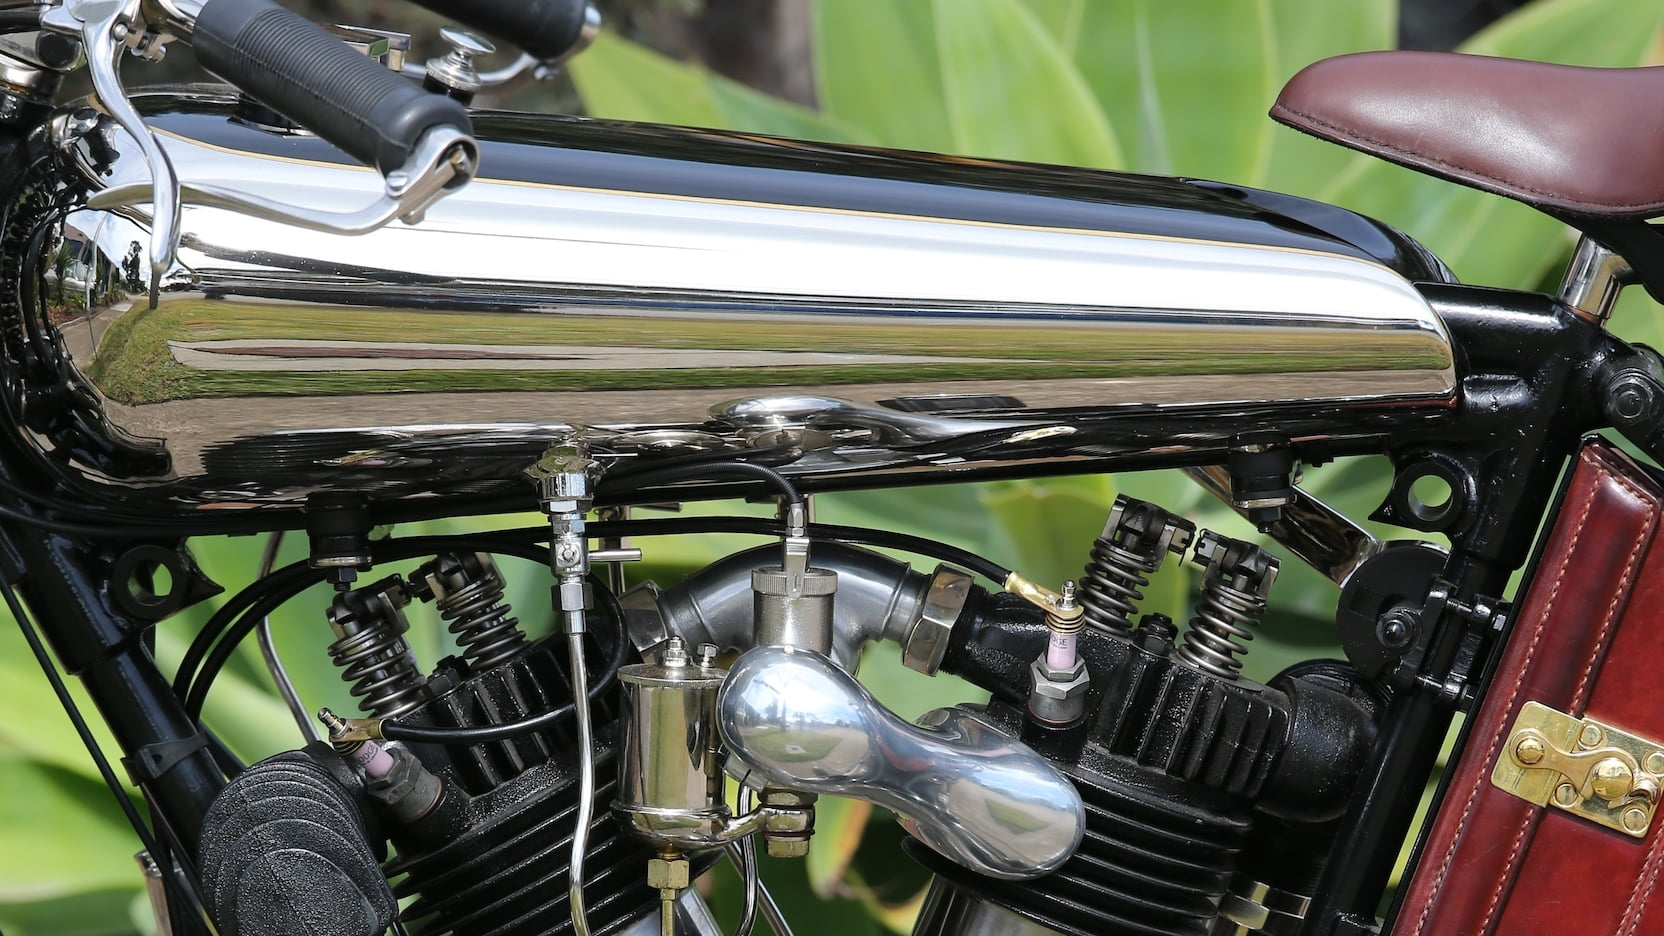 Brough Superior motorcycle fuel tank